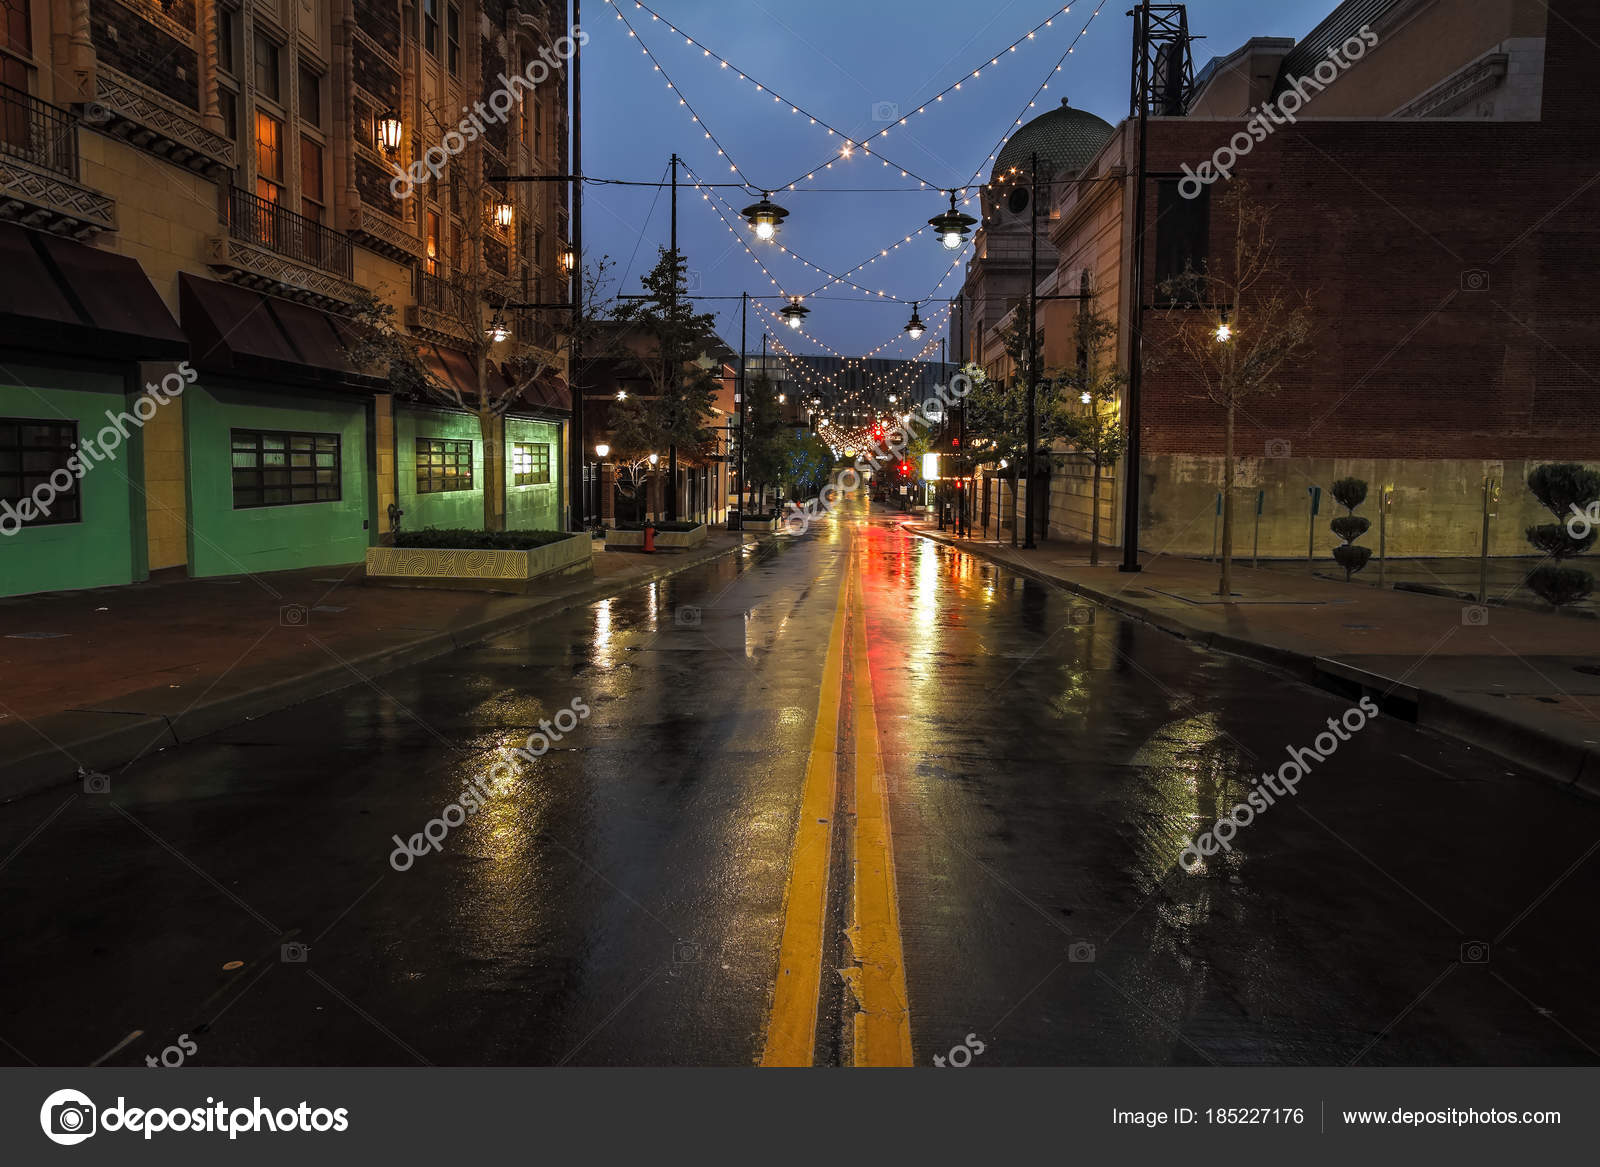 A Rainy Morning In Kansas City On The Streets Of The Kansas City Power U0026 Light  District Which Is Popular Among Tourist And Shoppers. U2014 Photo By TommyBrison